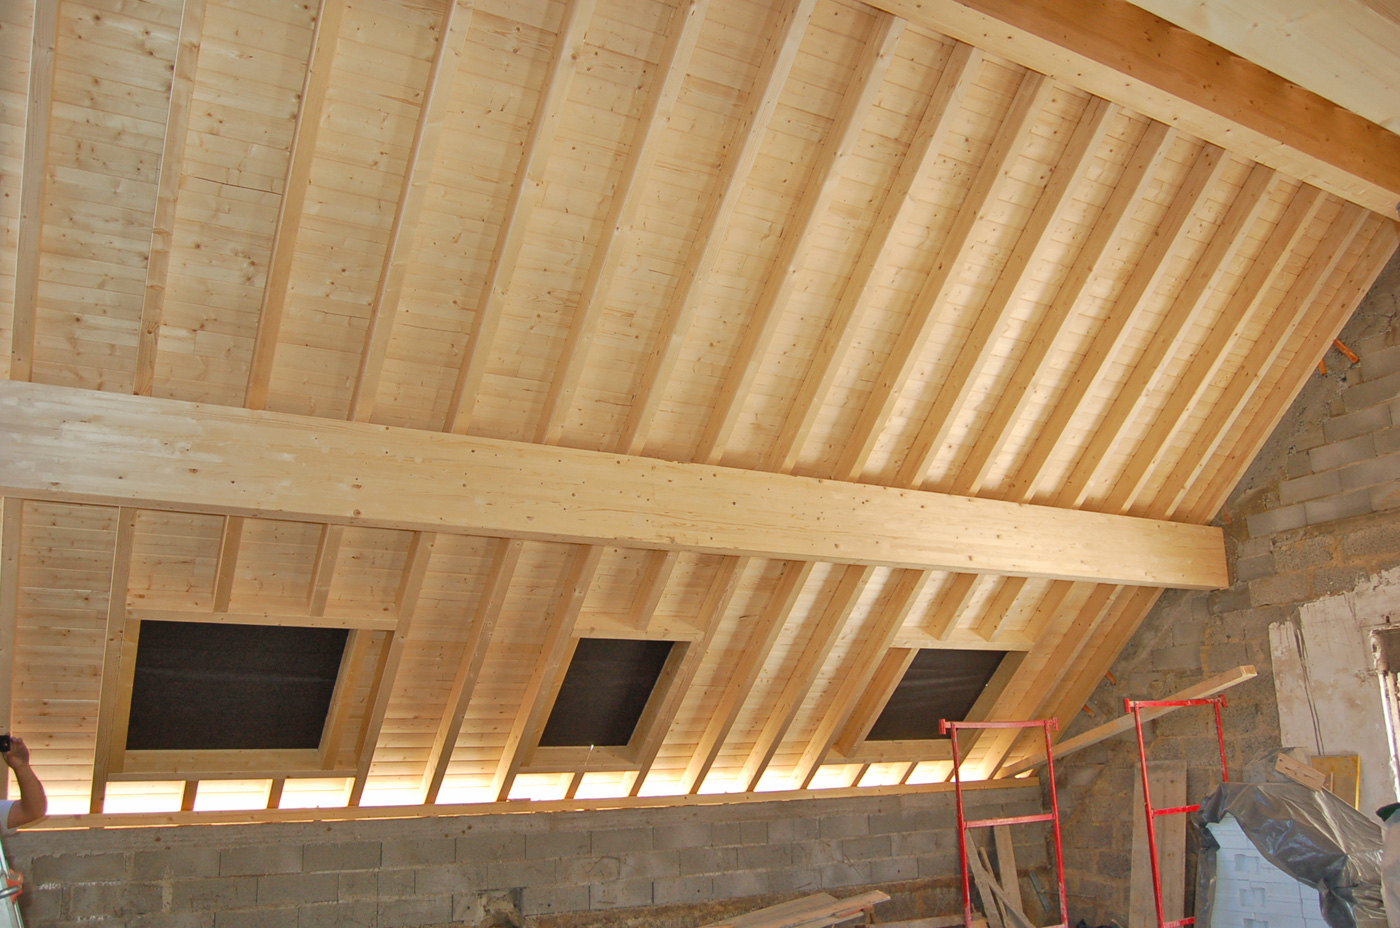 Attic construction